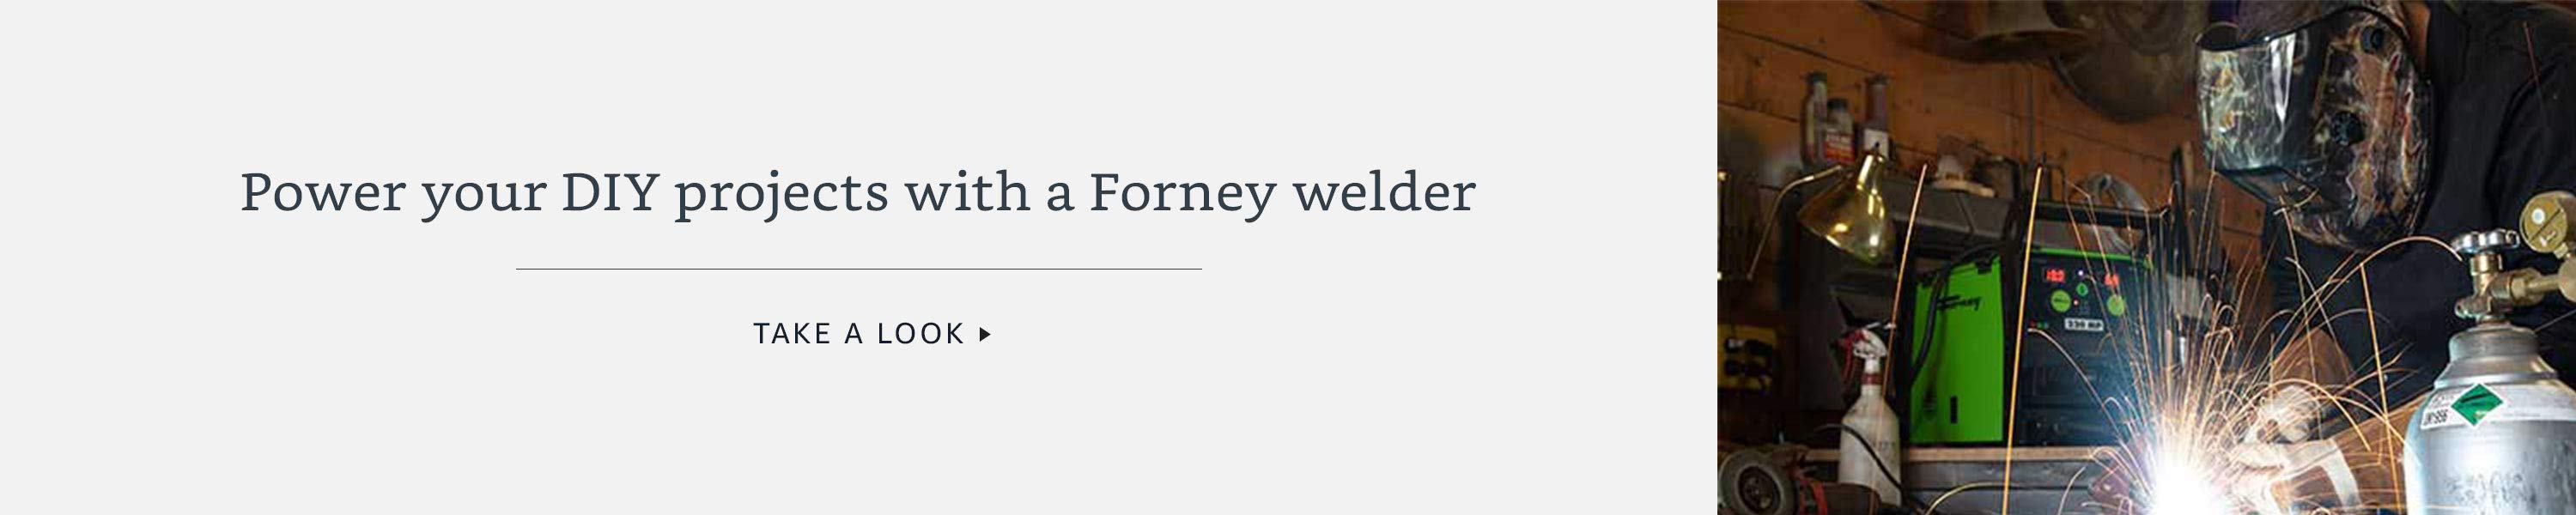 Power your DIY projects with a Forney welder